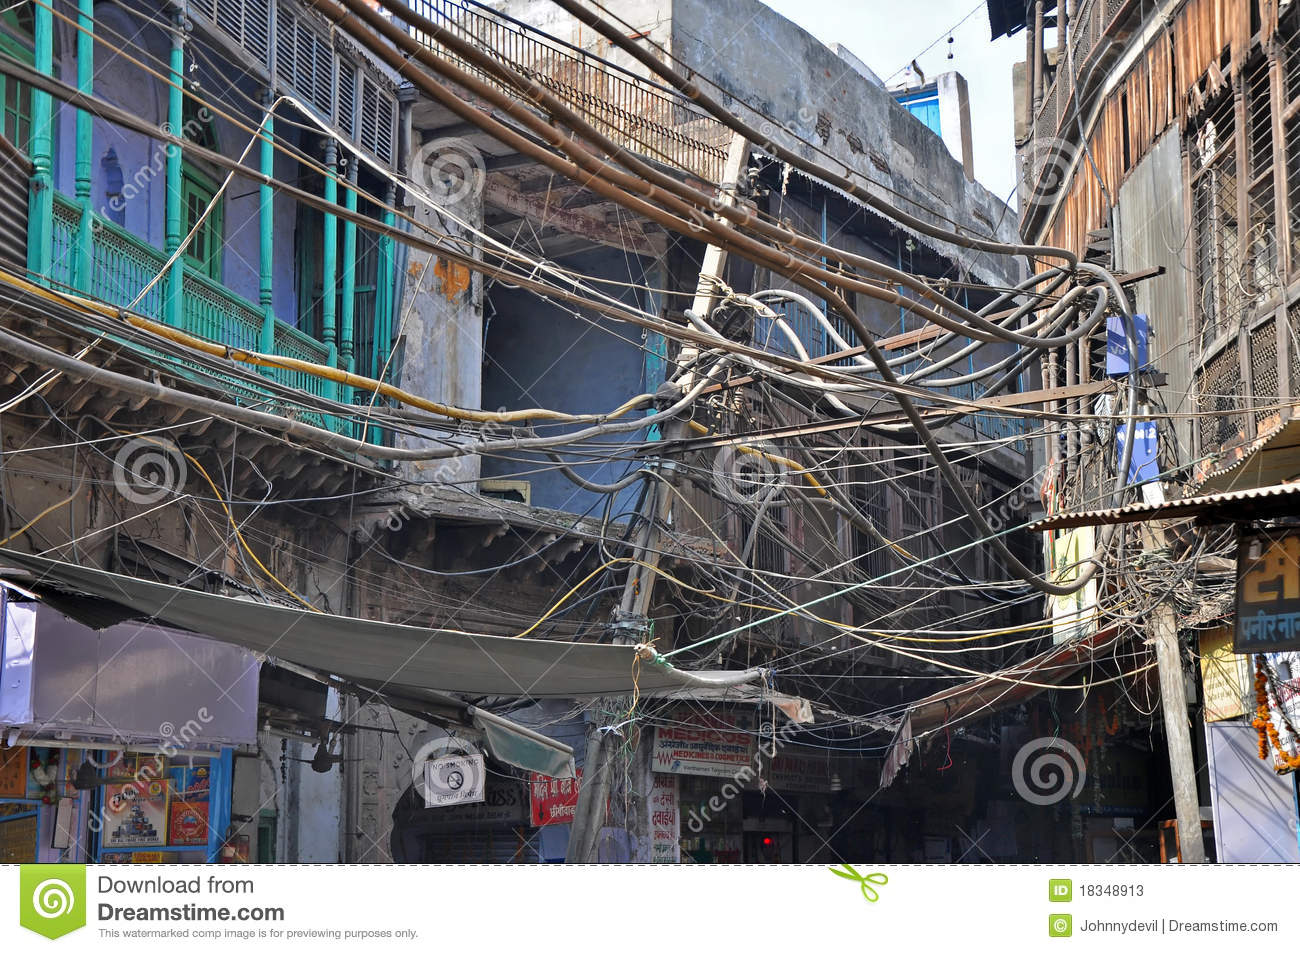 electrical wiring in india editorial stock photo image of chaos rh dreamstime com India Phone Lines Stealing Electric Lines India